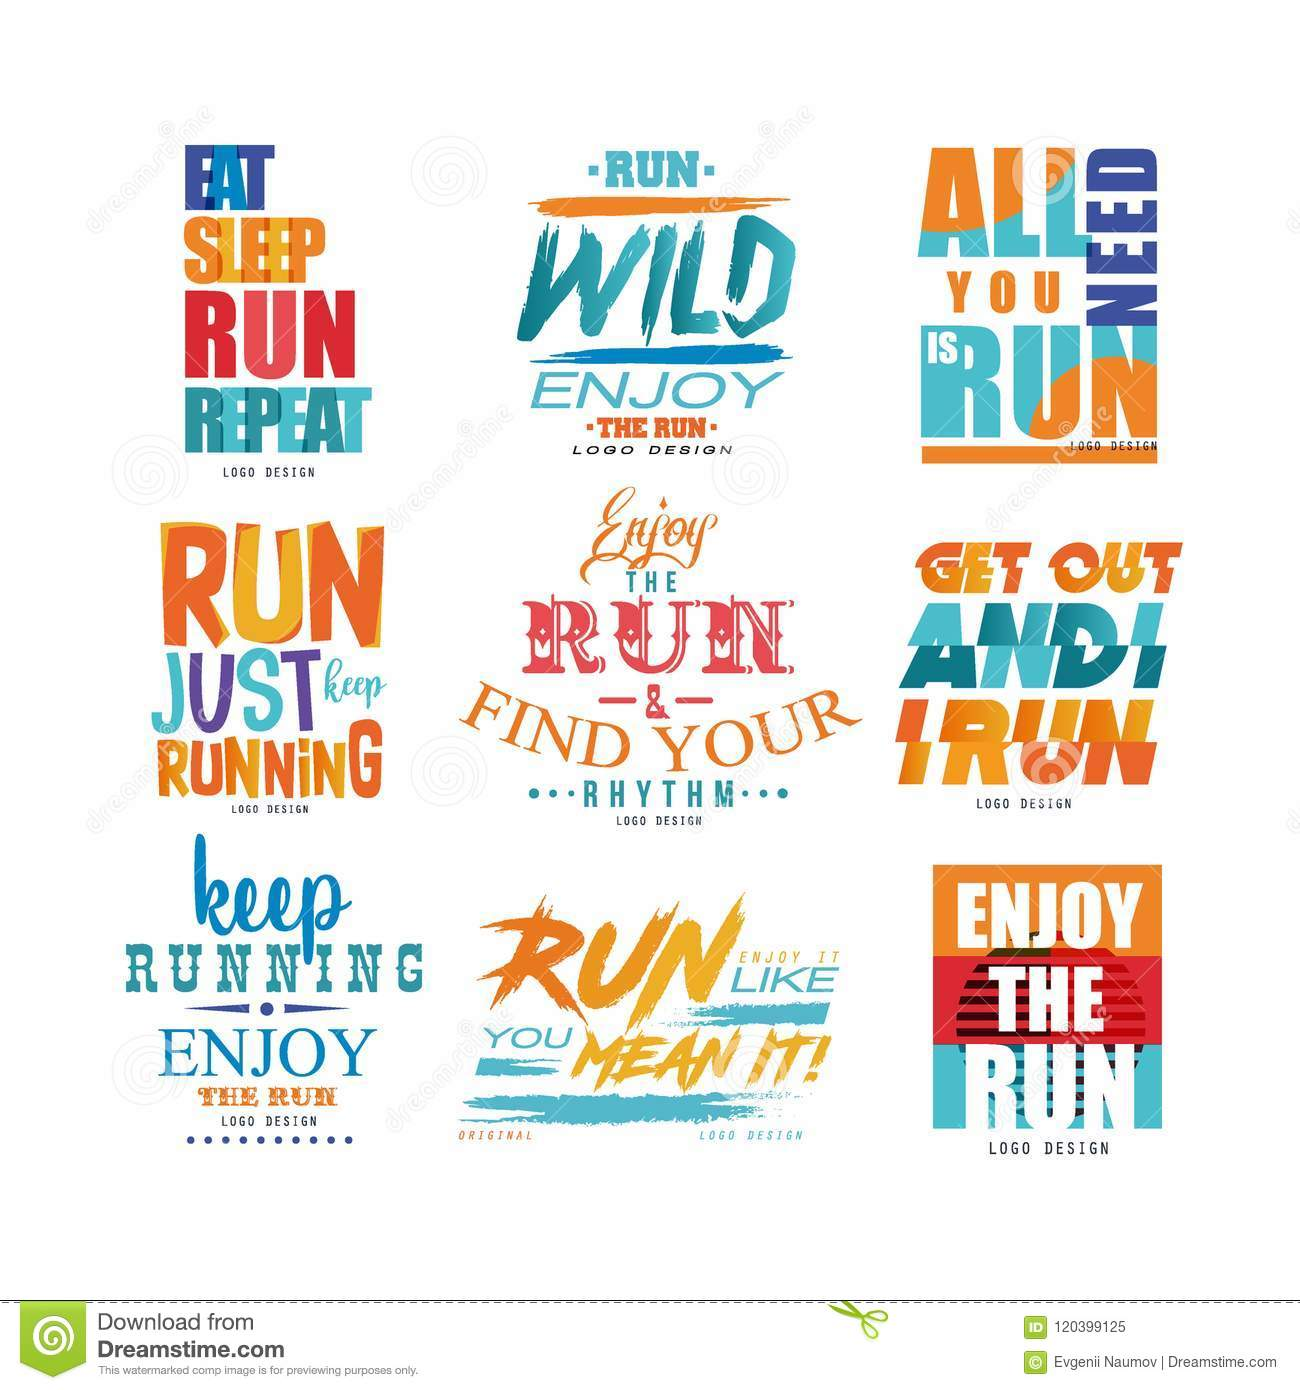 MOTIVATIONAL  POSTER RUNNING INSPIRATIONAL 5 PRINT PICTURE